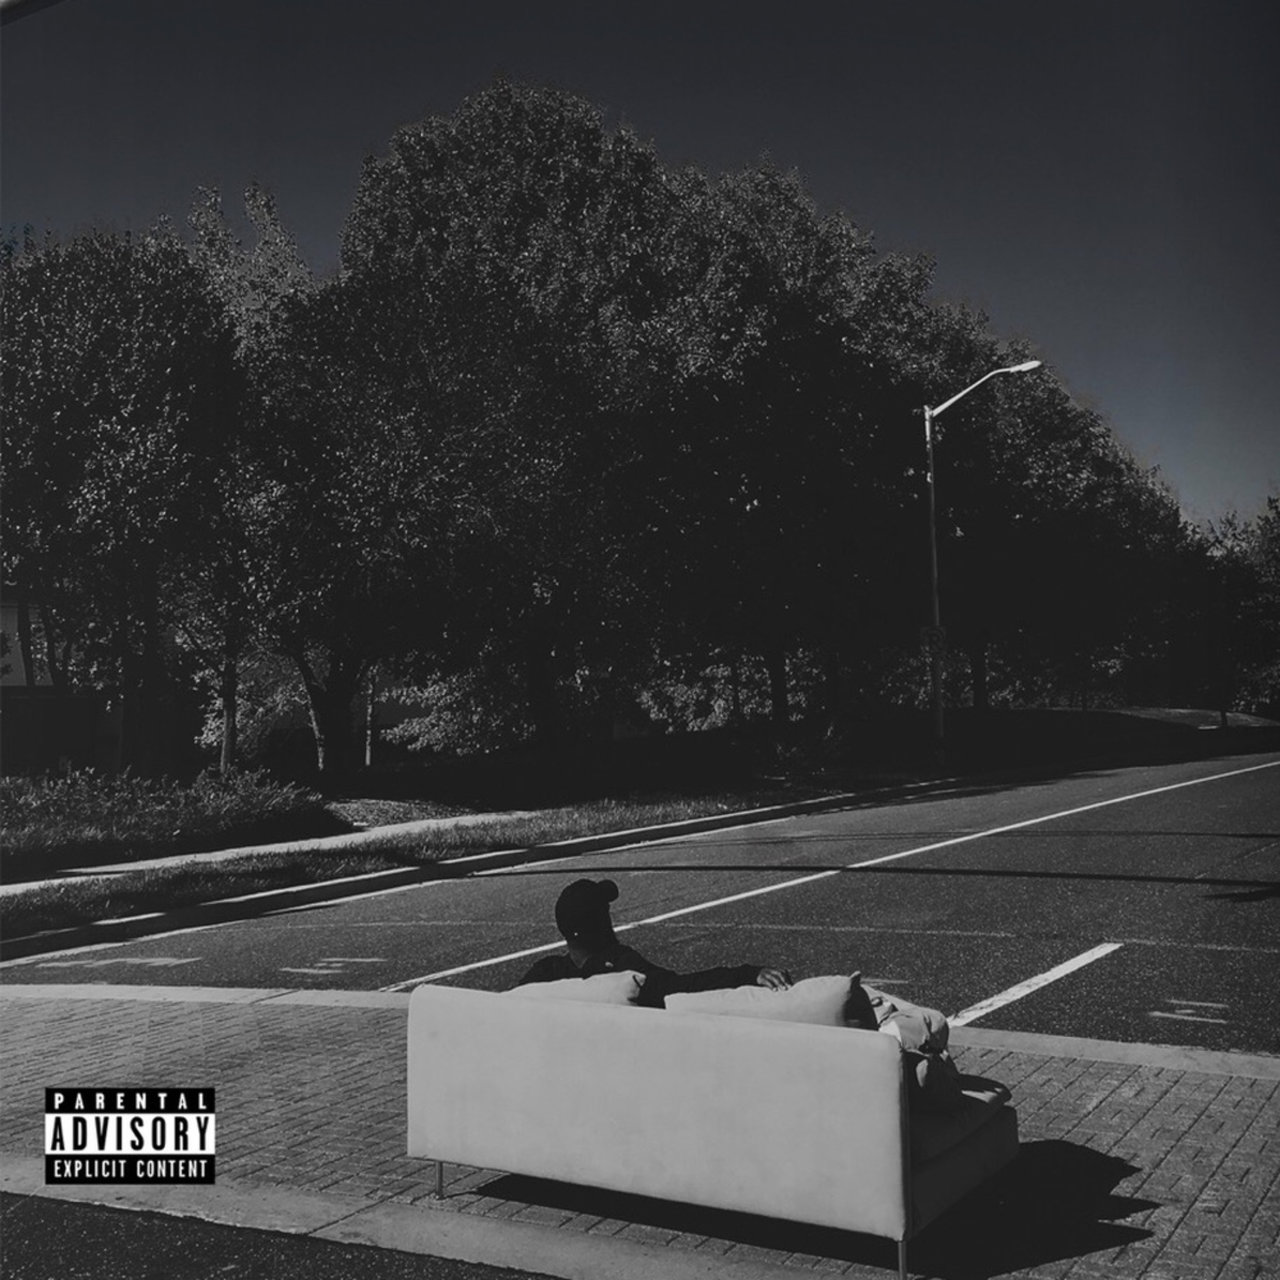 G'Town Wayne – 'Worthwhile' (Stream)